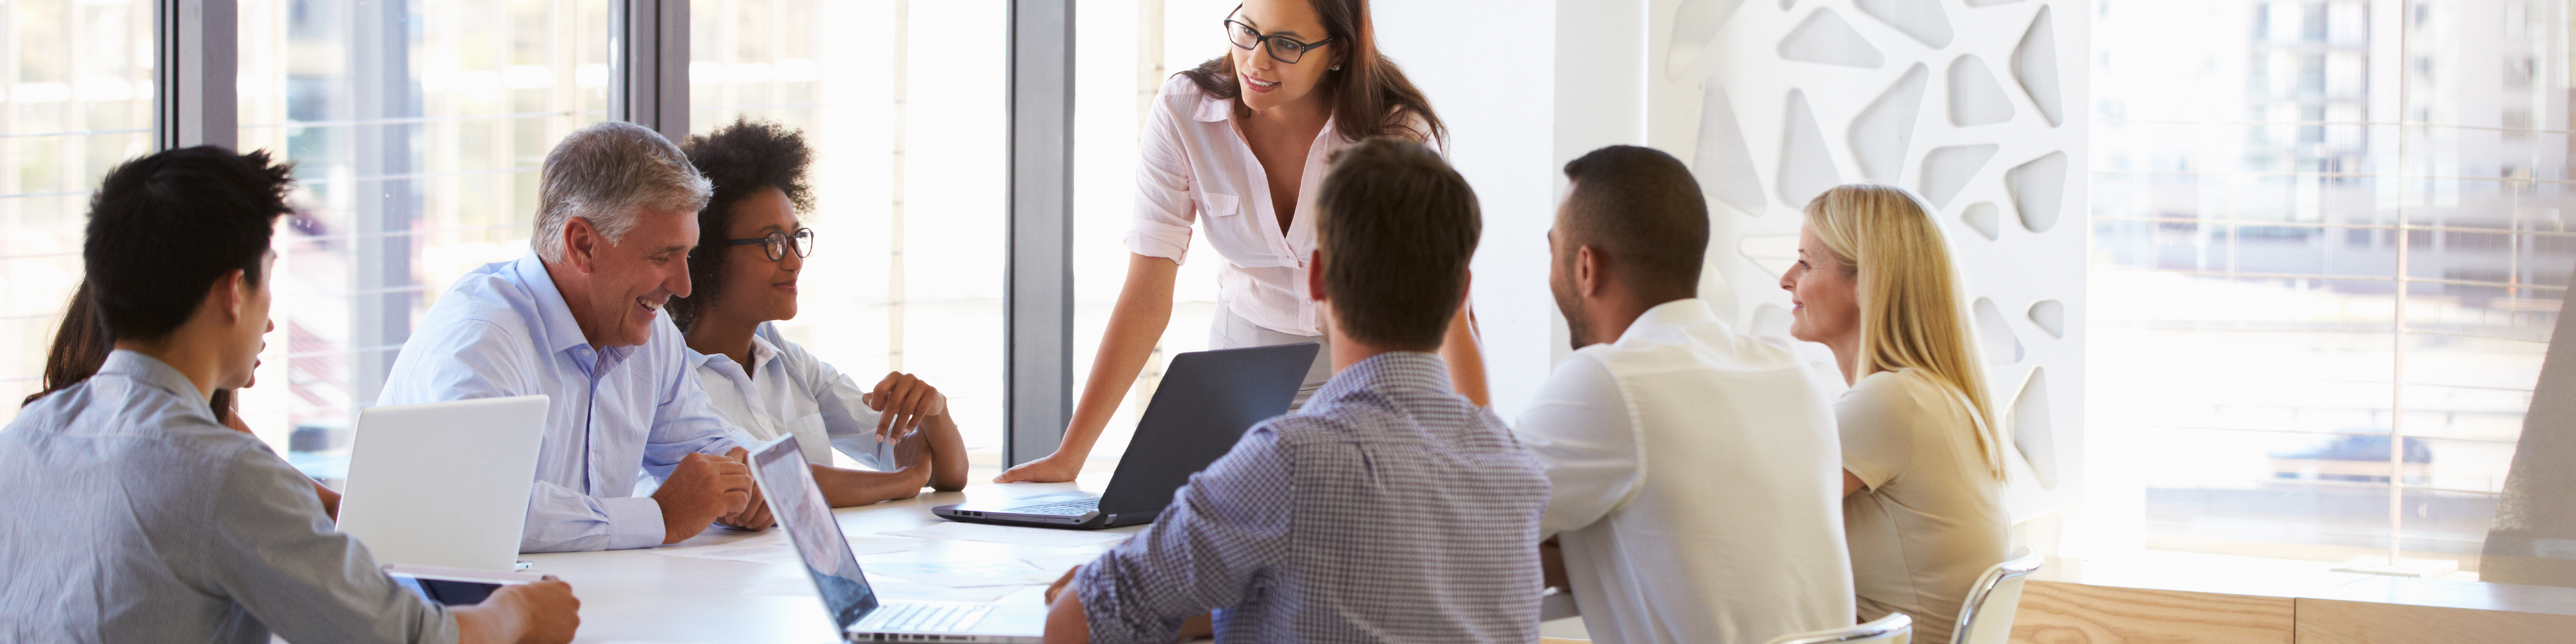 Finance Transformation: Getting the most from your team by fostering strategic thinking